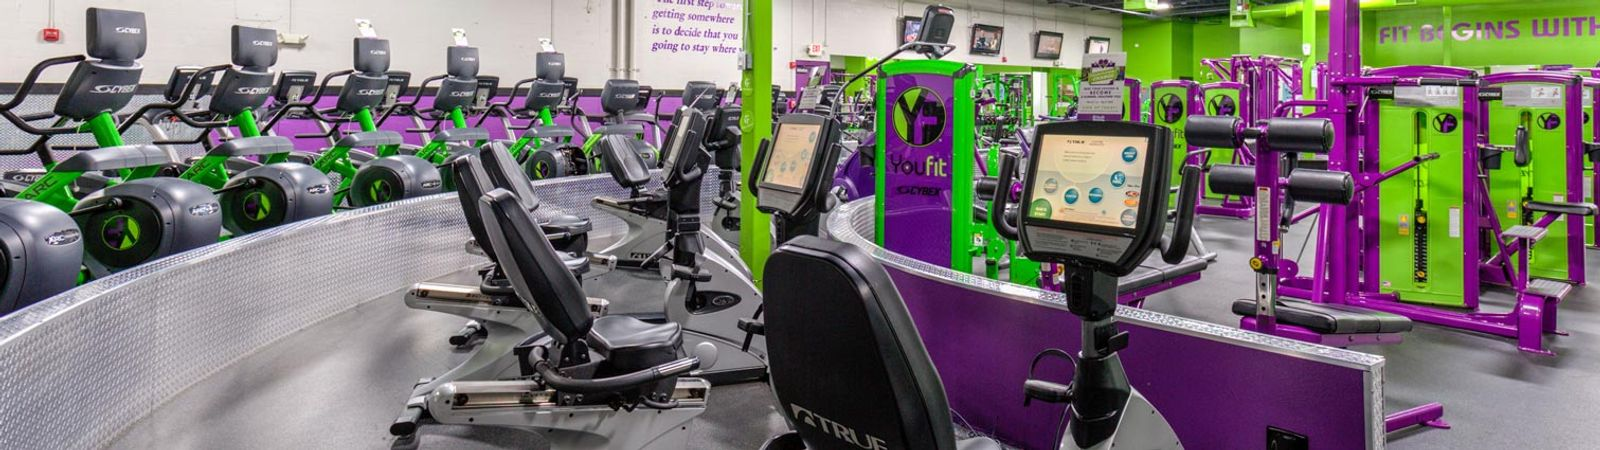 Gyms In Miami, FL   Youfit - Miami Shores